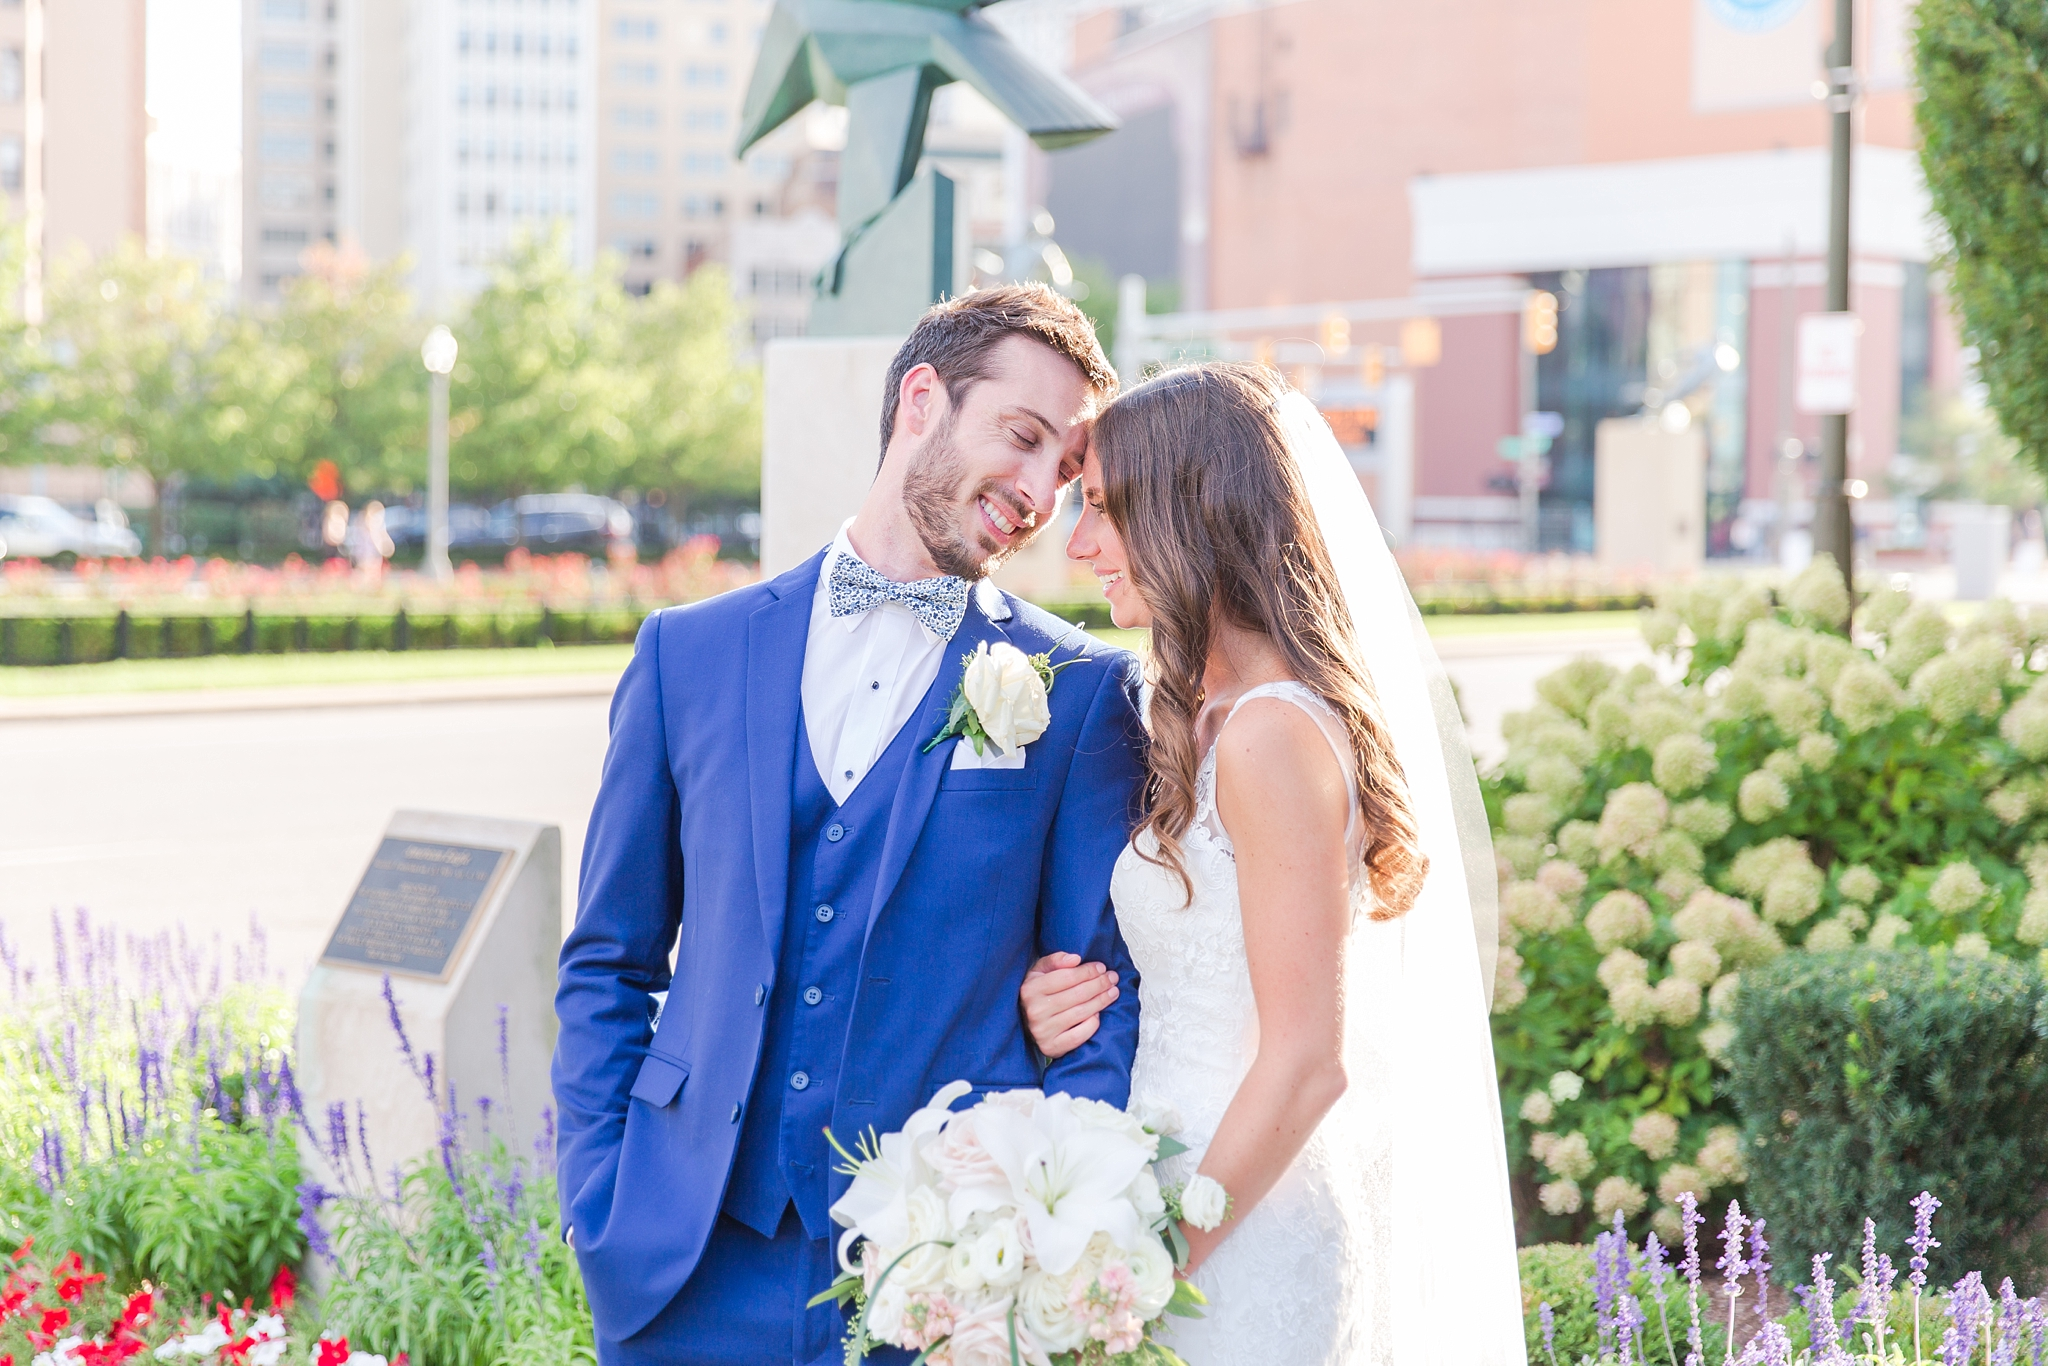 playful-blush-navy-wedding-photos-the-detroit-athletic-club-in-detroit-michigan-by-courtney-carolyn-photography_0055.jpg